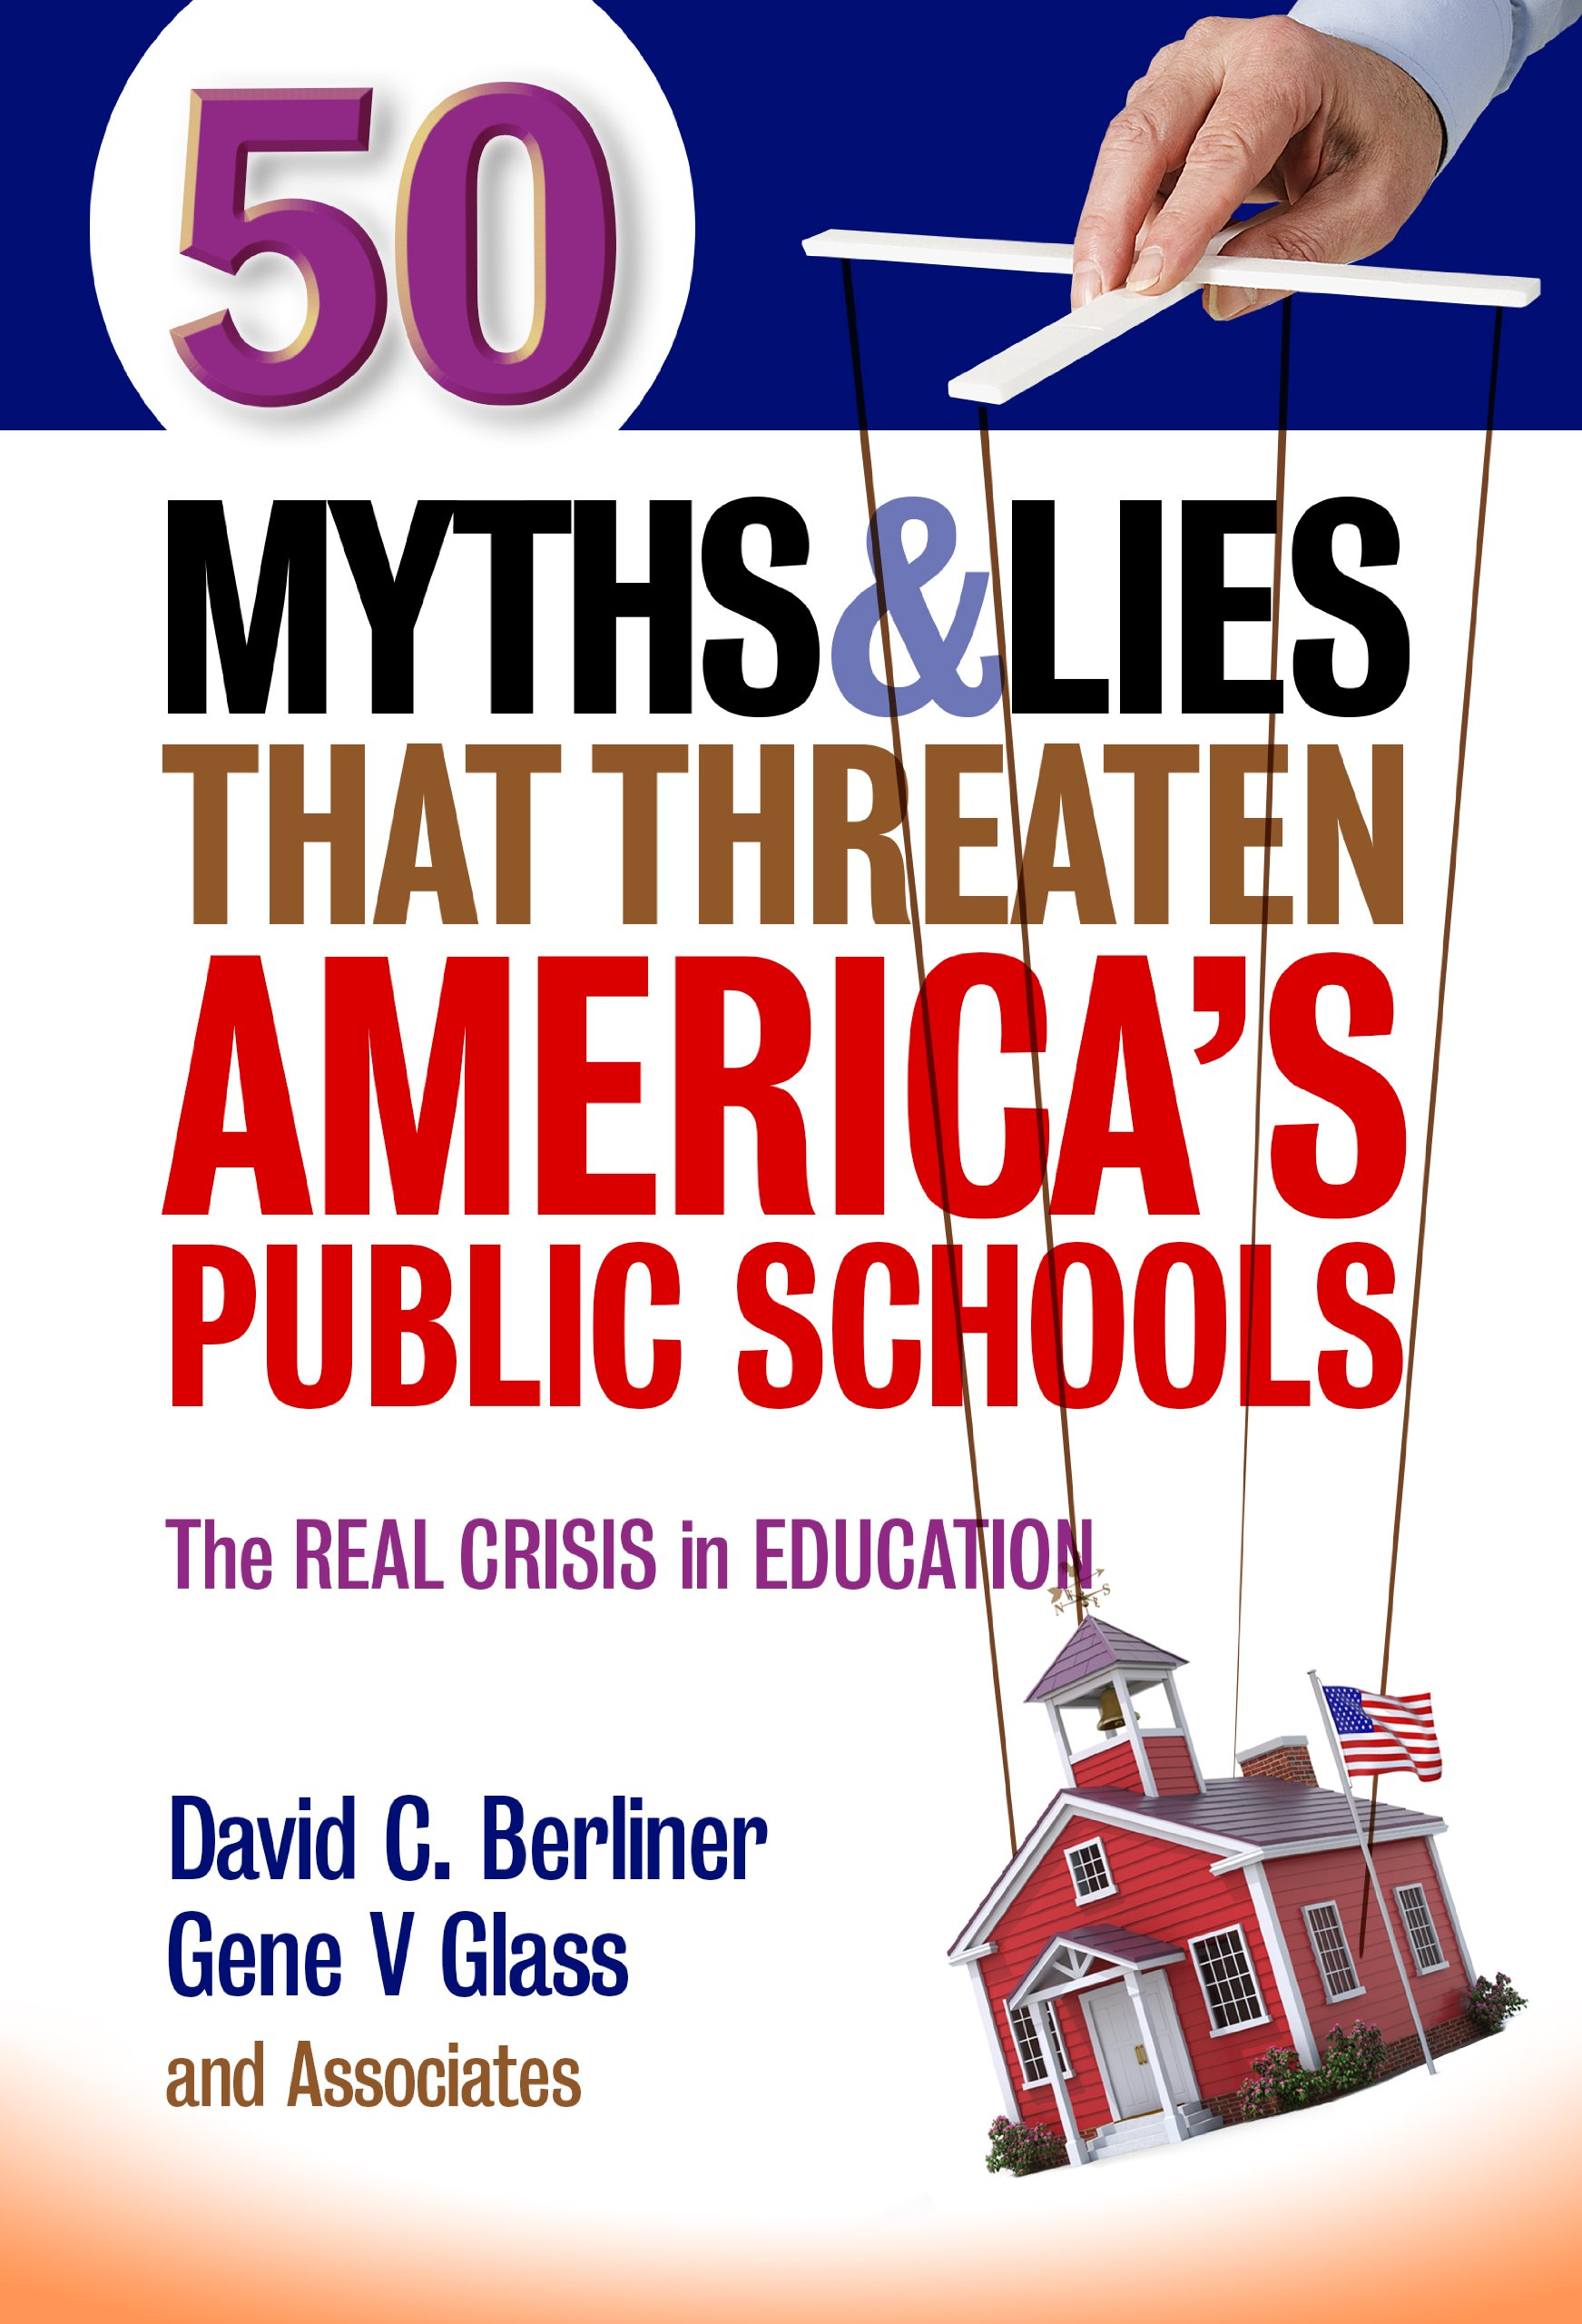 myths and lies that threaten america s public schools the real 50 myths and lies that threaten america s public schools the real crisis in education david c berliner gene v glass associates 9780807755242